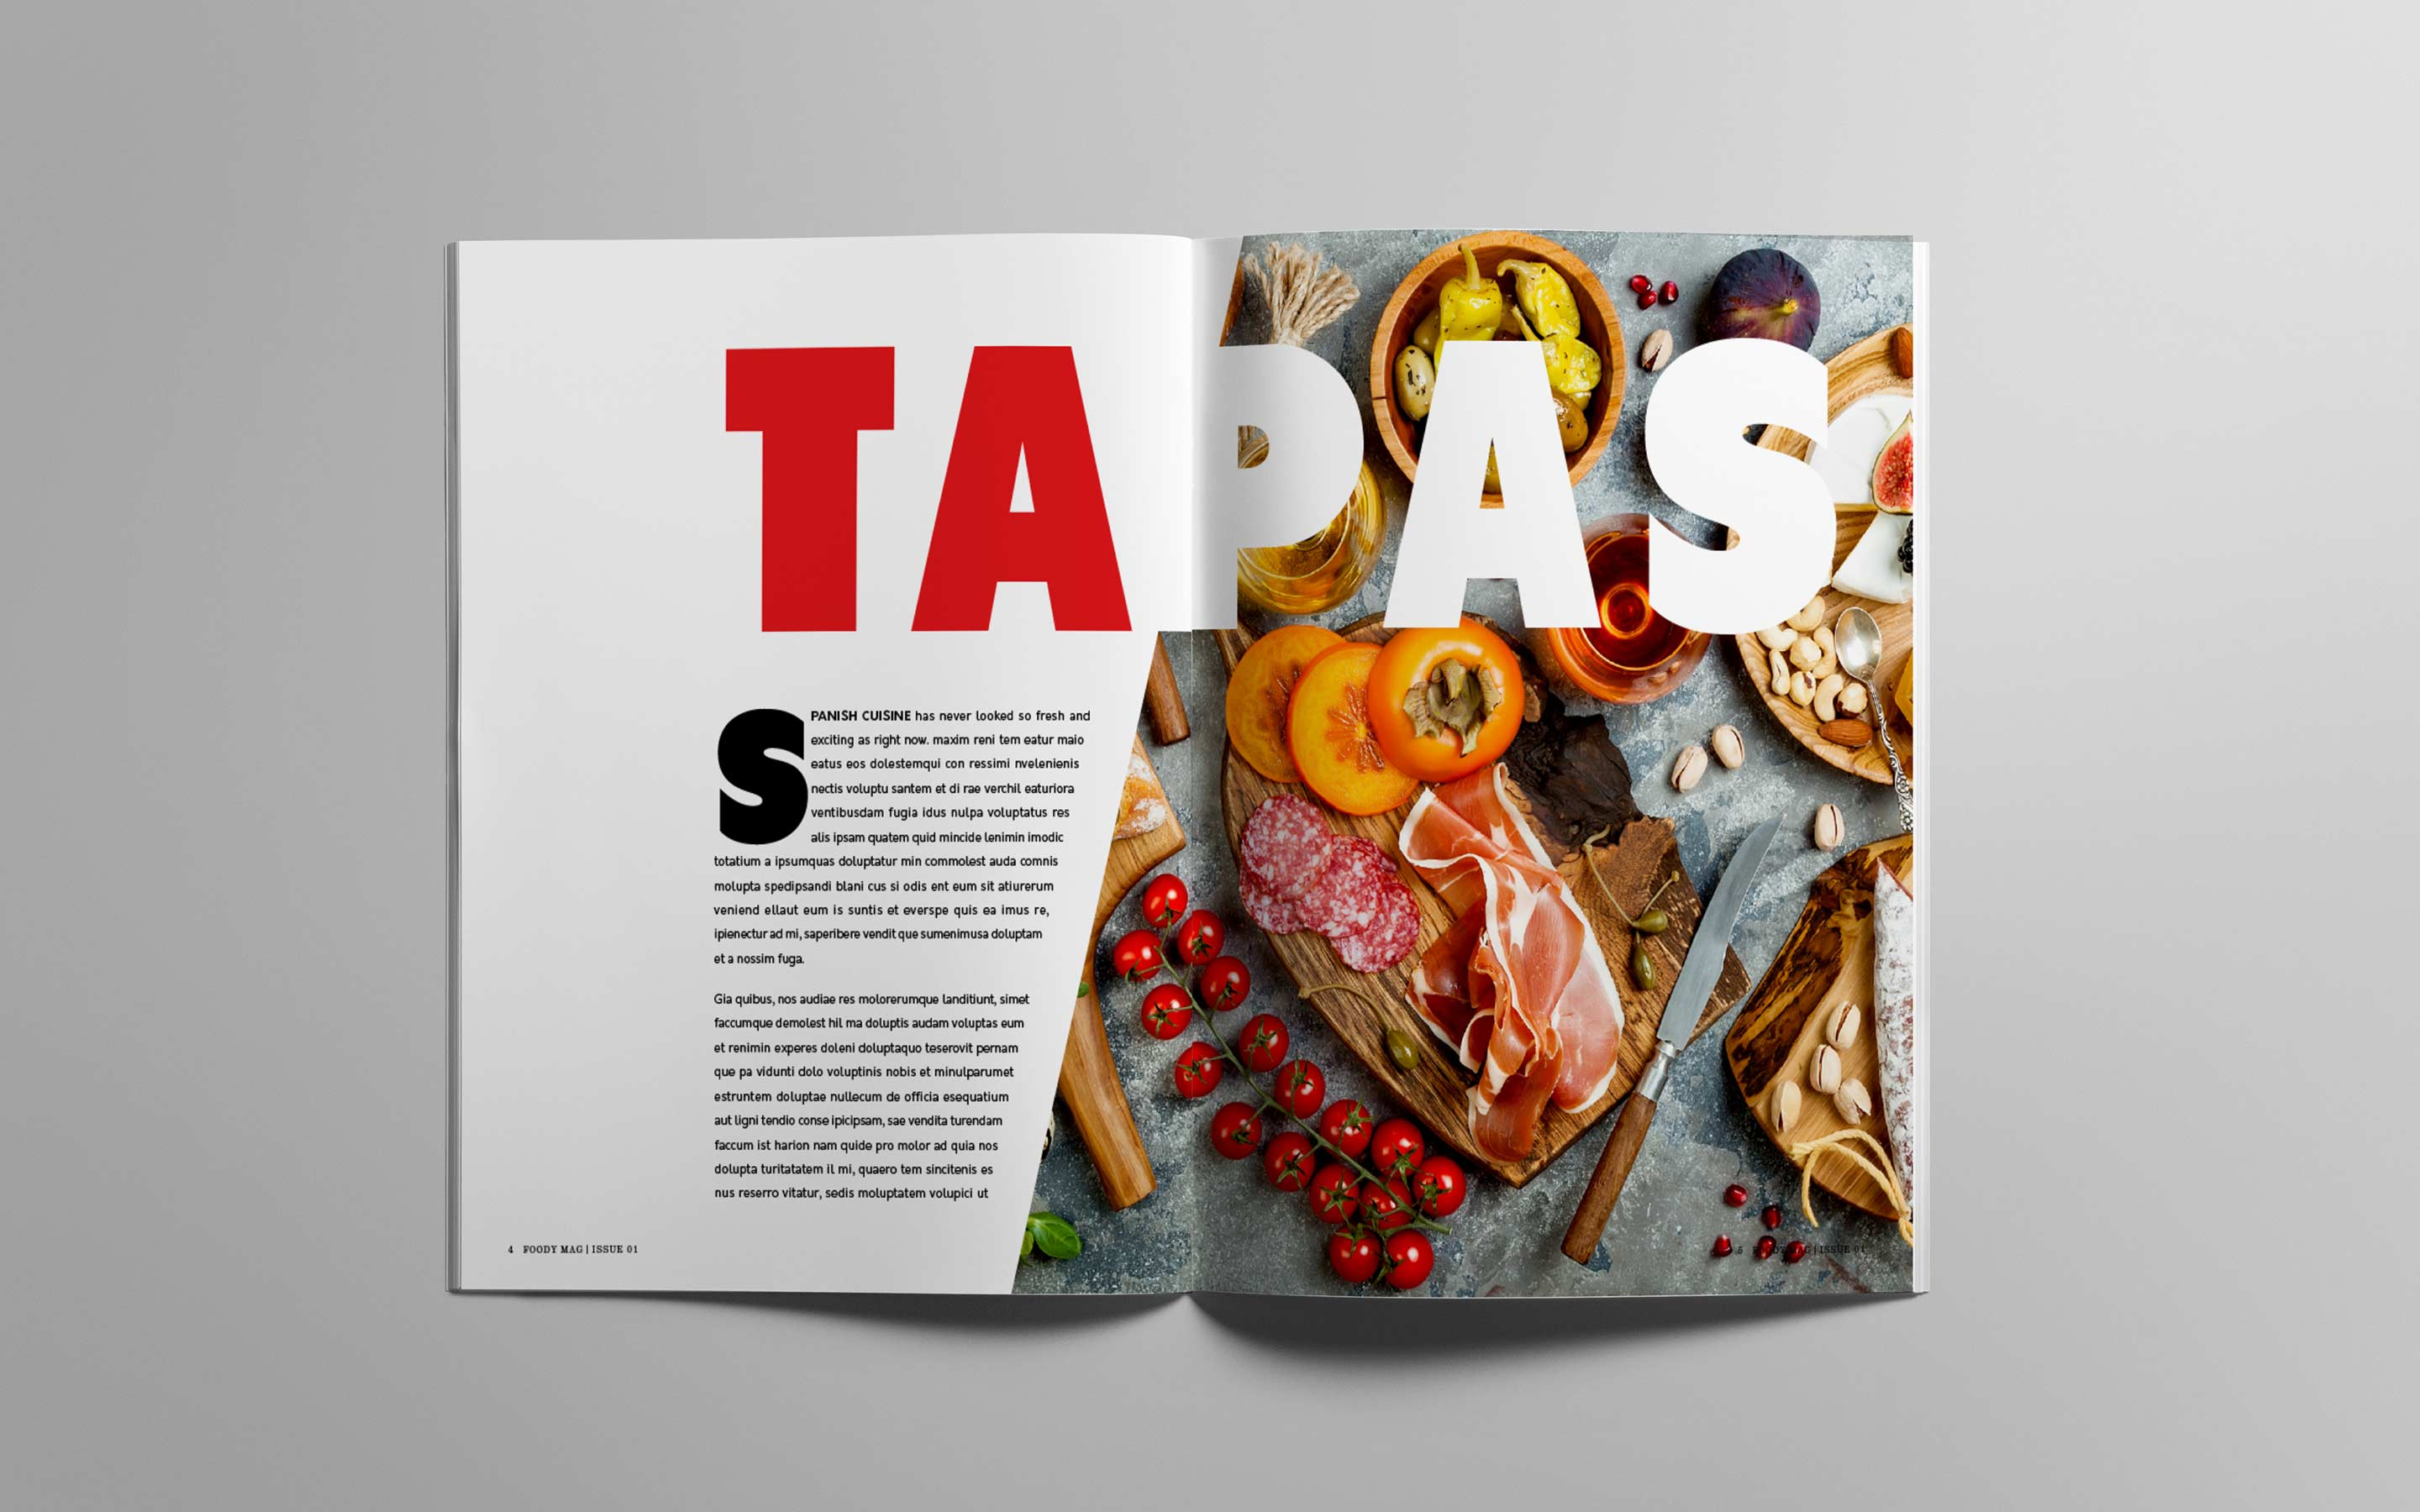 InDesign Secrets: 10 Hidden Features and Little-Known Design Tips